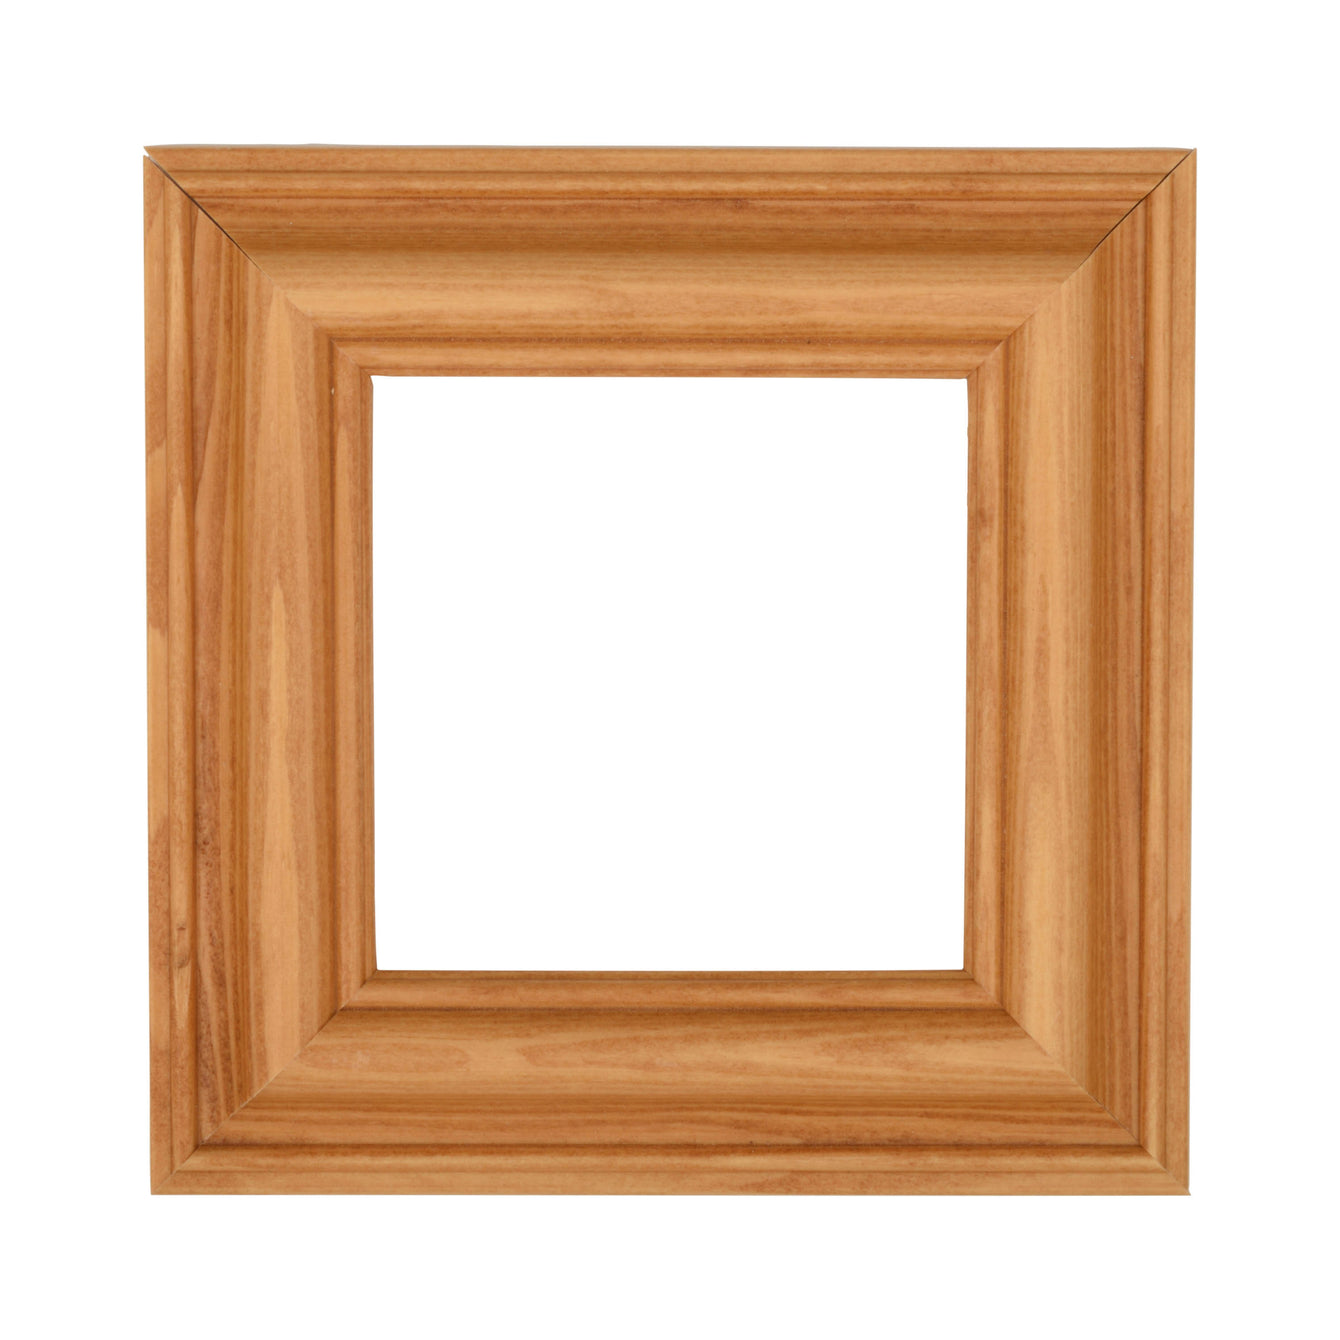 ElekTek Switch Surround Ovolo Frame Cover Finger Plate Pine Shades Limed Pine